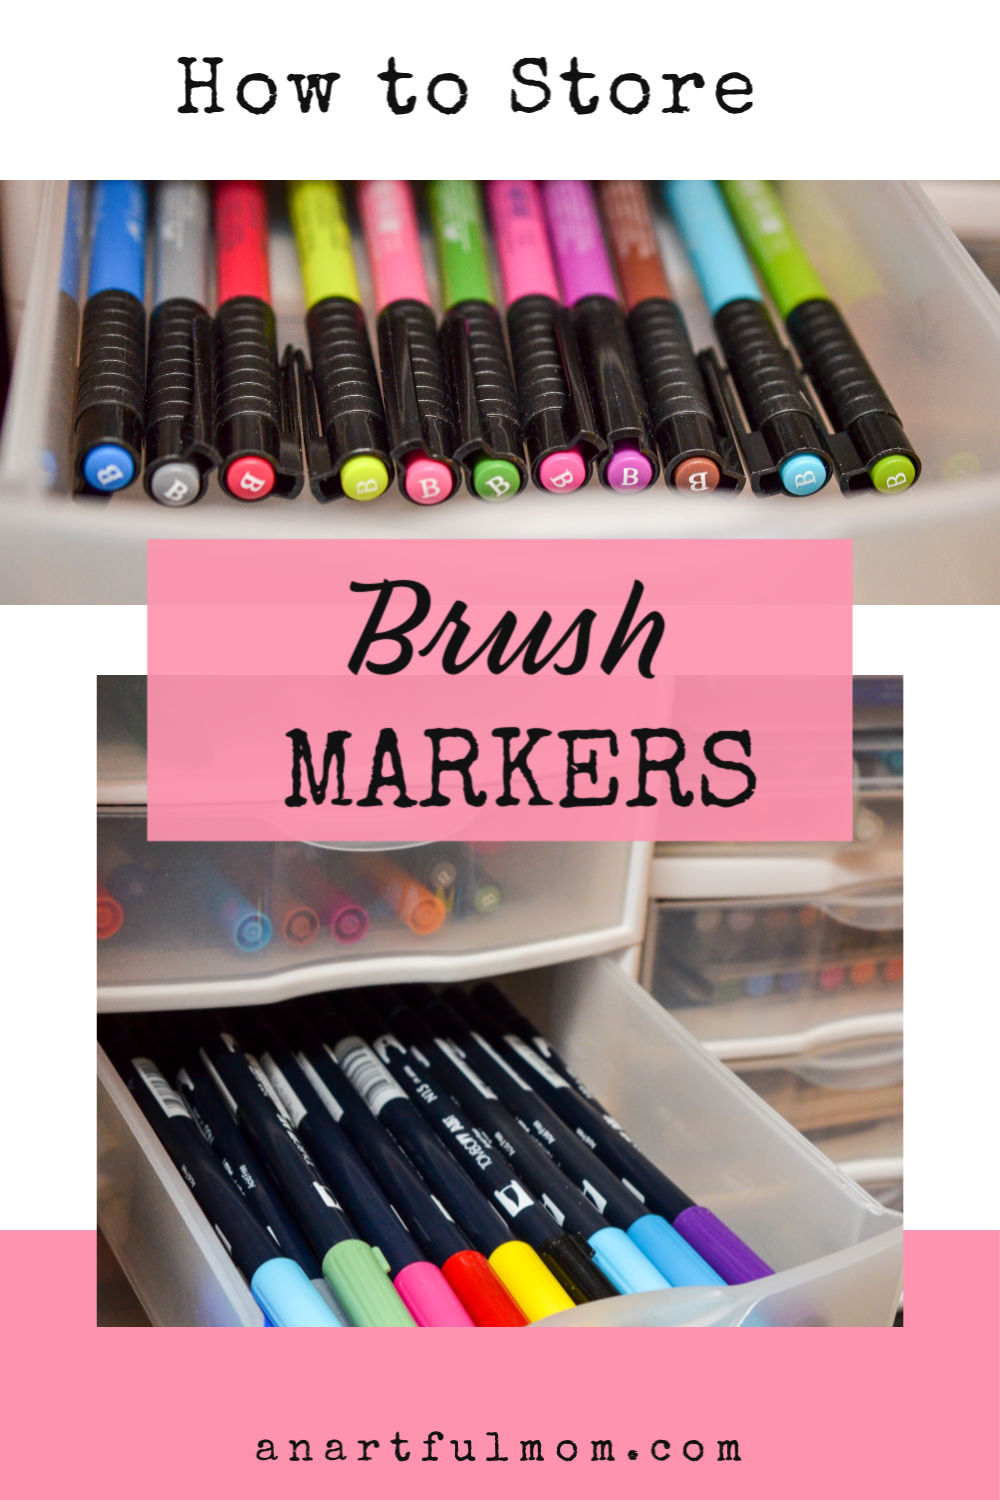 Brush Pen and Brush Marker Storage (Tombow, etc.)